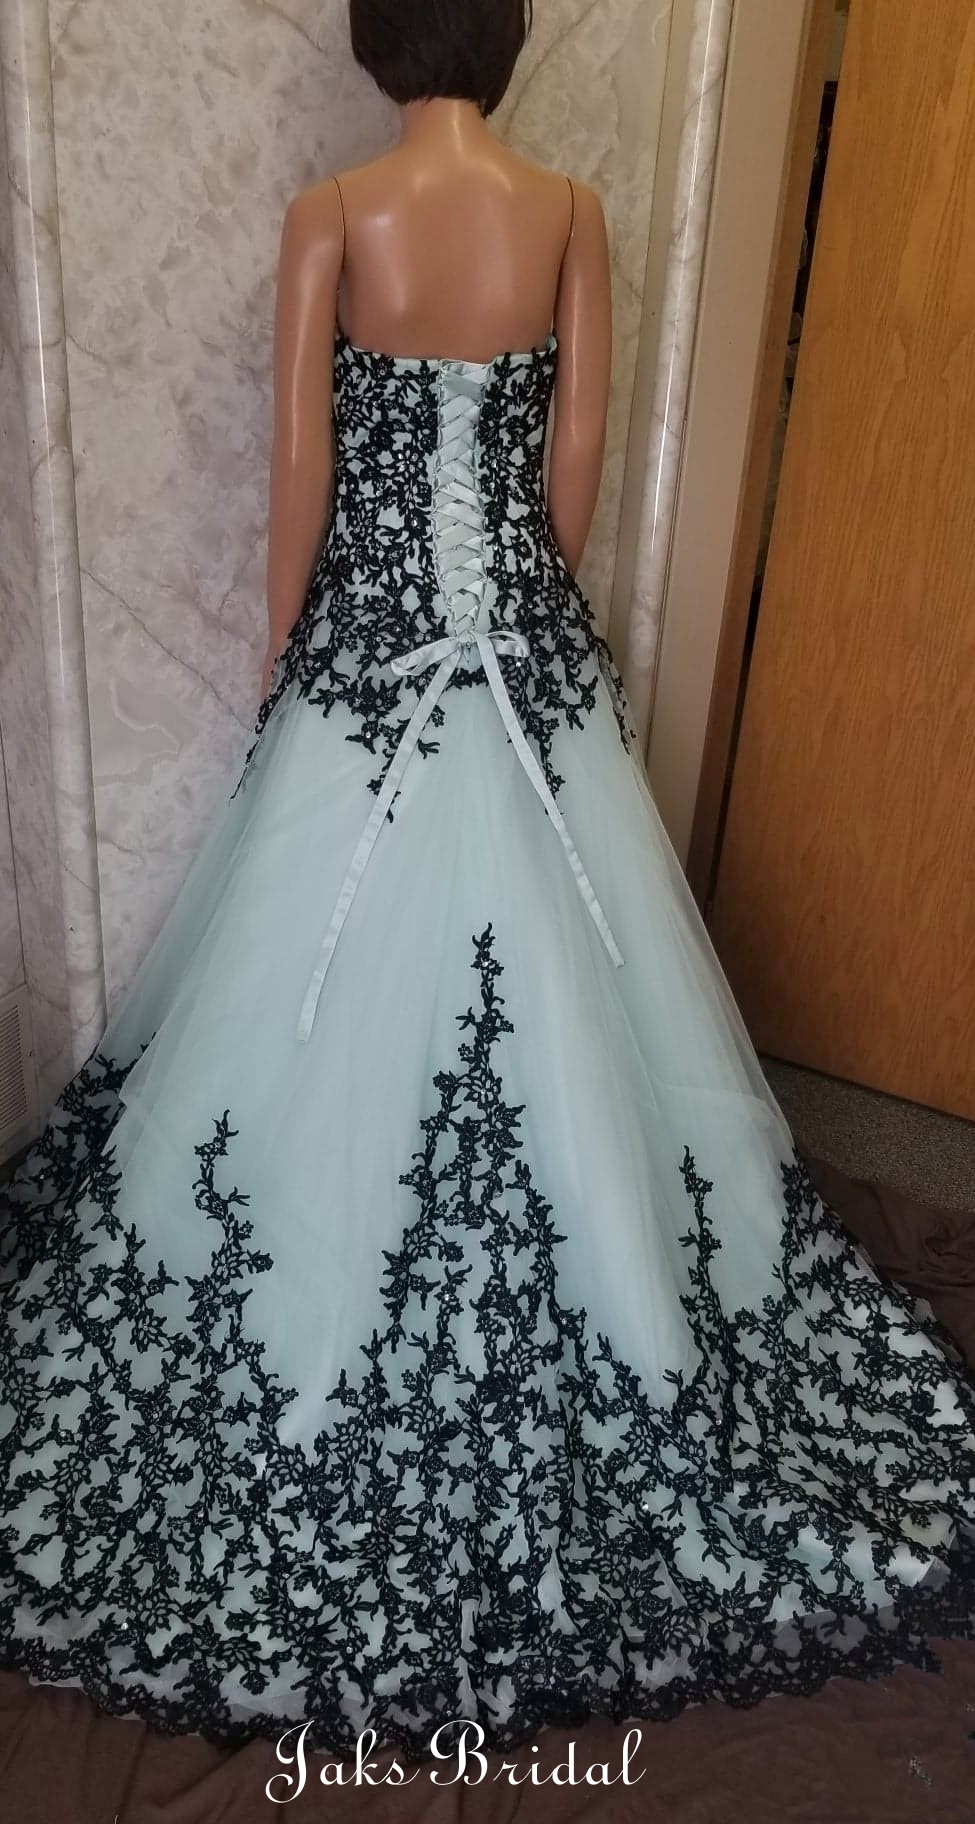 Mint and black lace ball gown